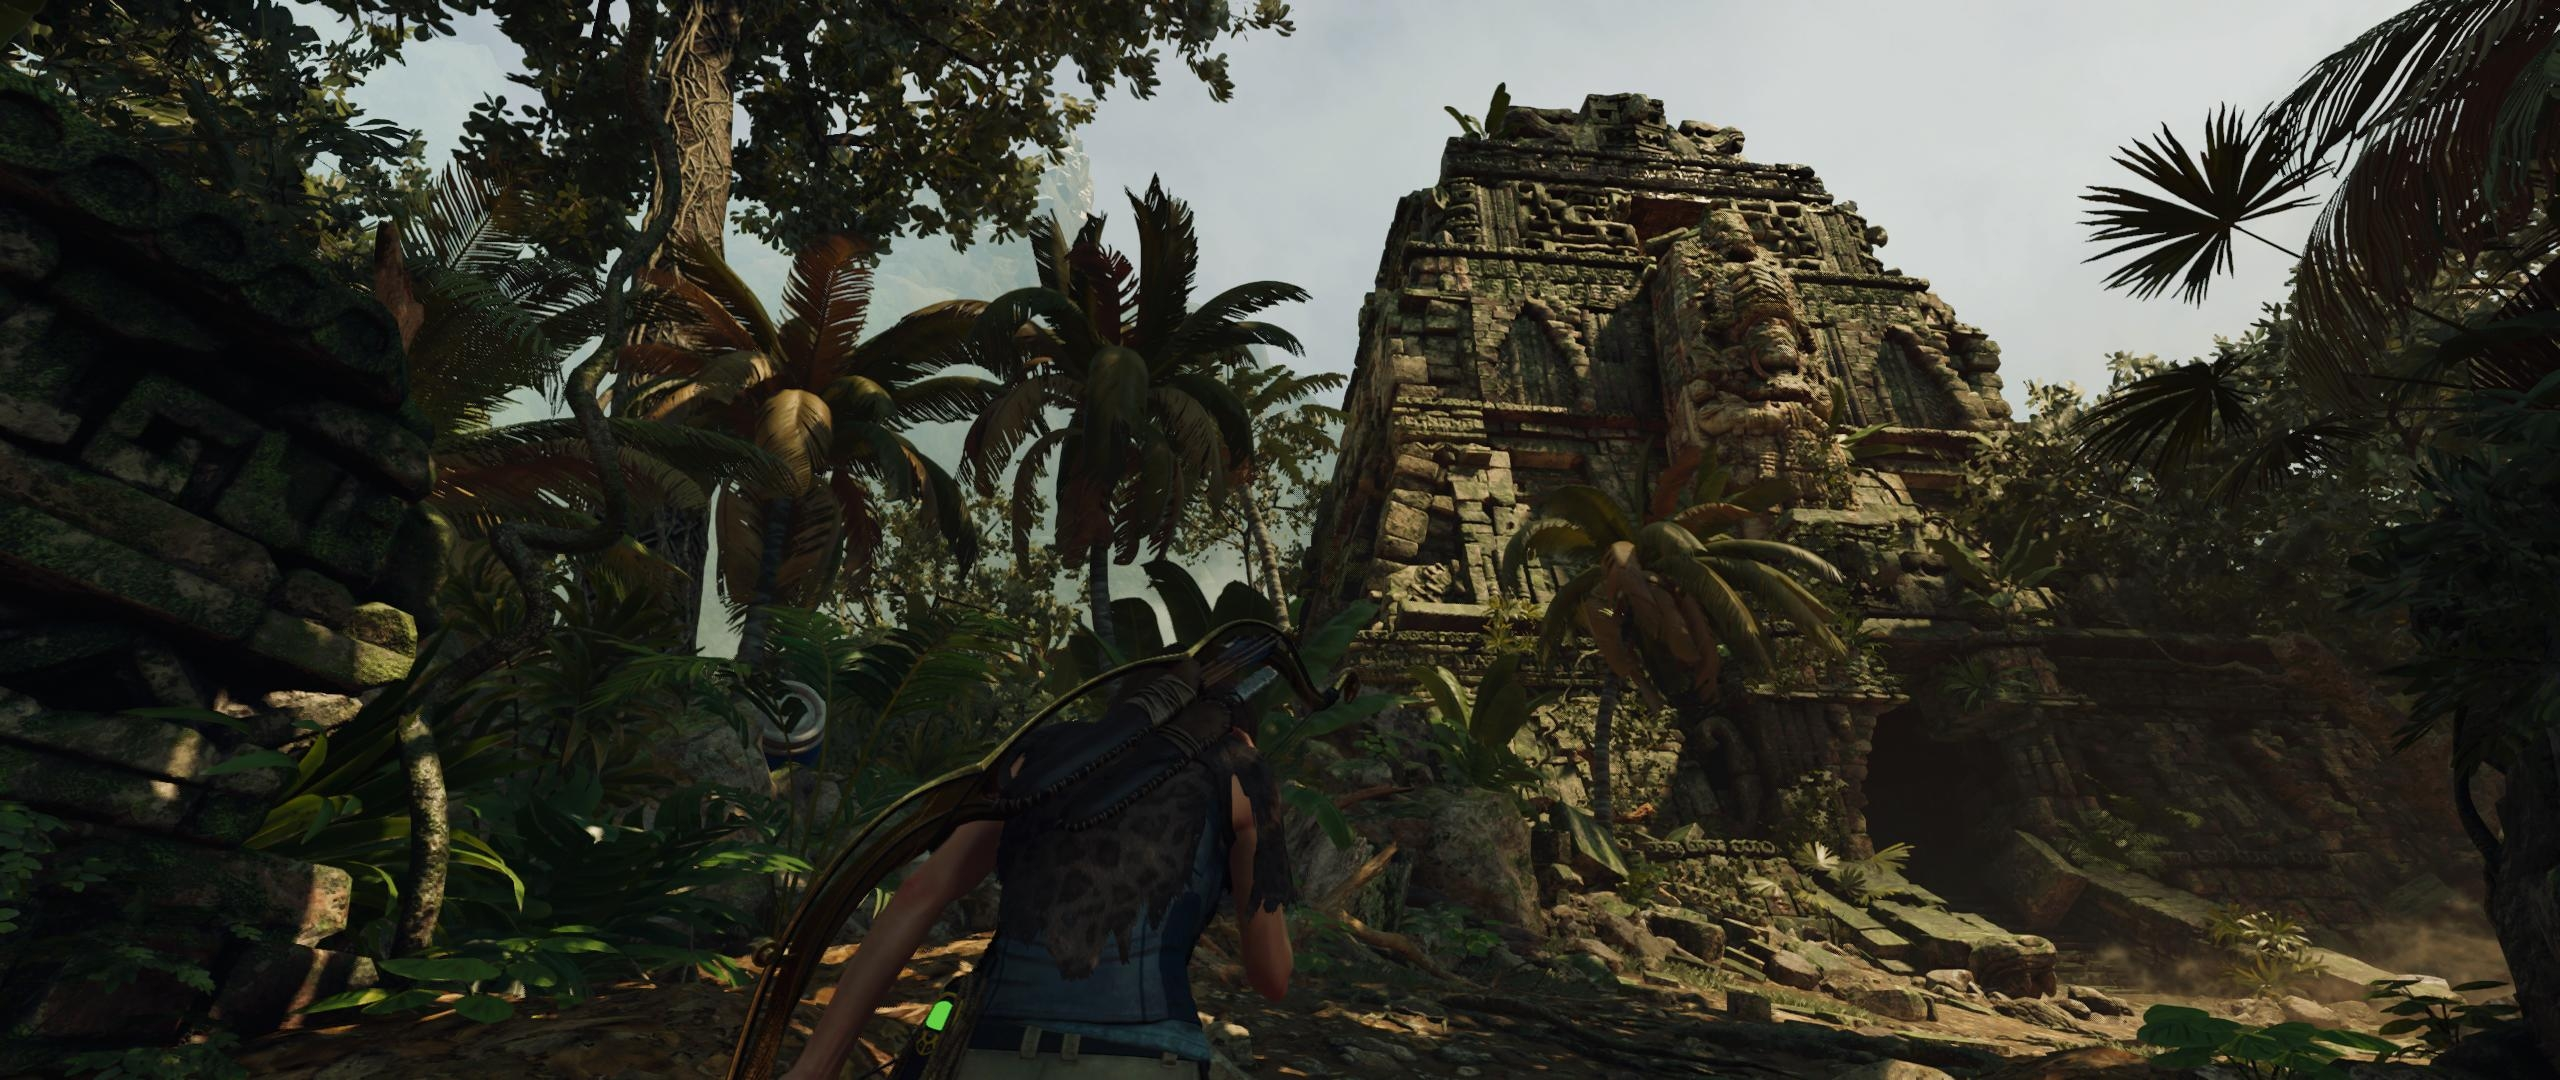 shadow_of_the_tomb_raider-105